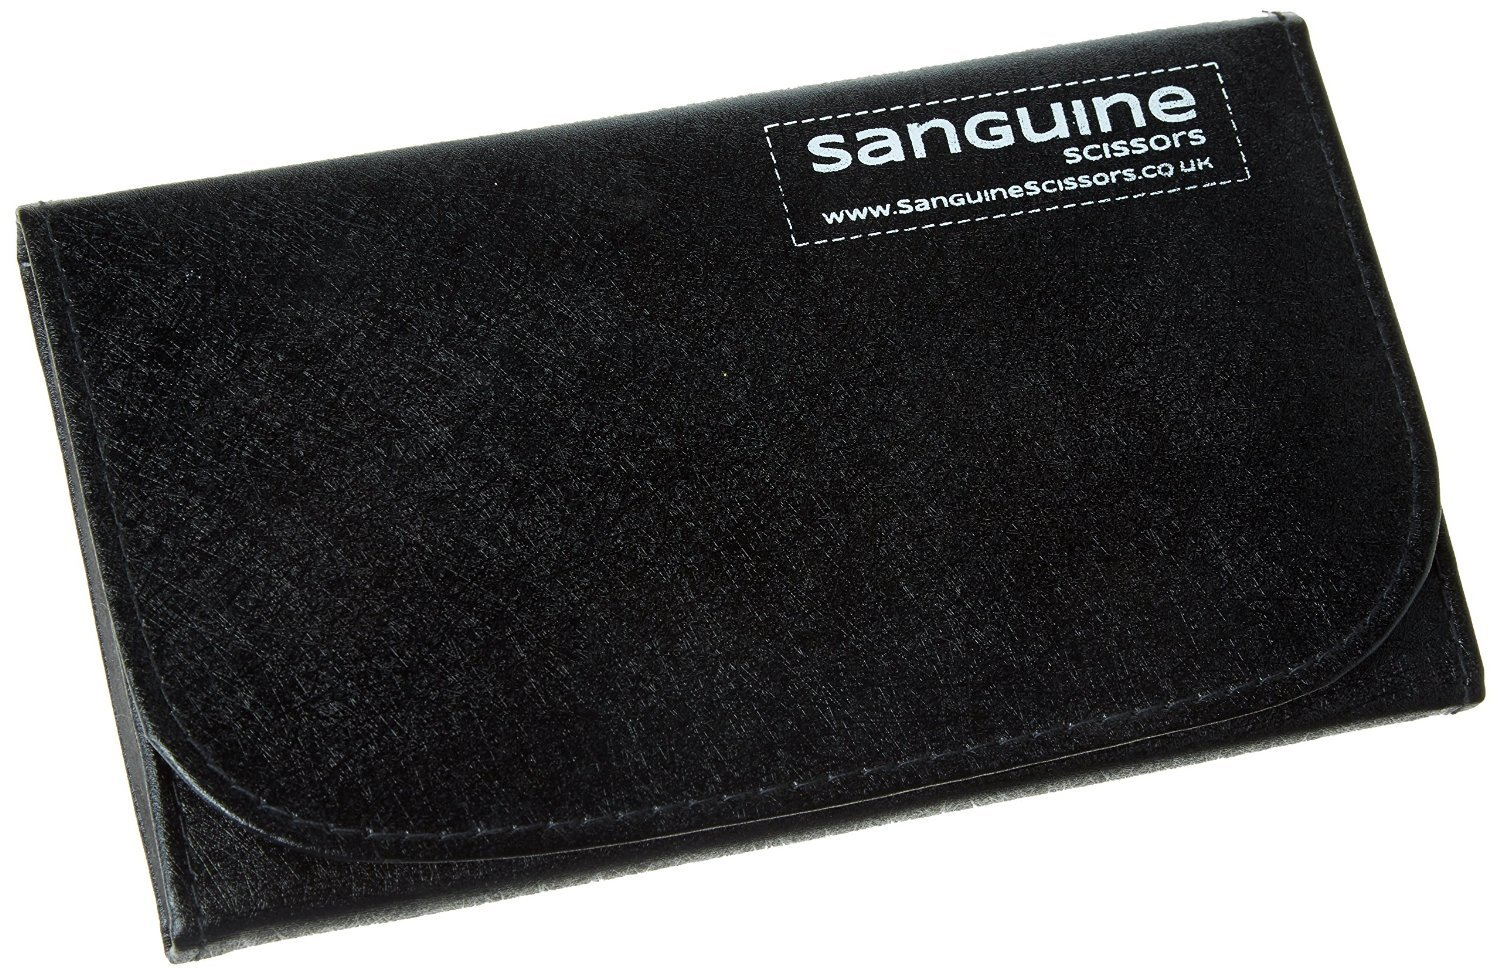 Professional Hairdressing Scissors 4.5 inch, BLACK, Top Quality - by Sanguine by Sanguine